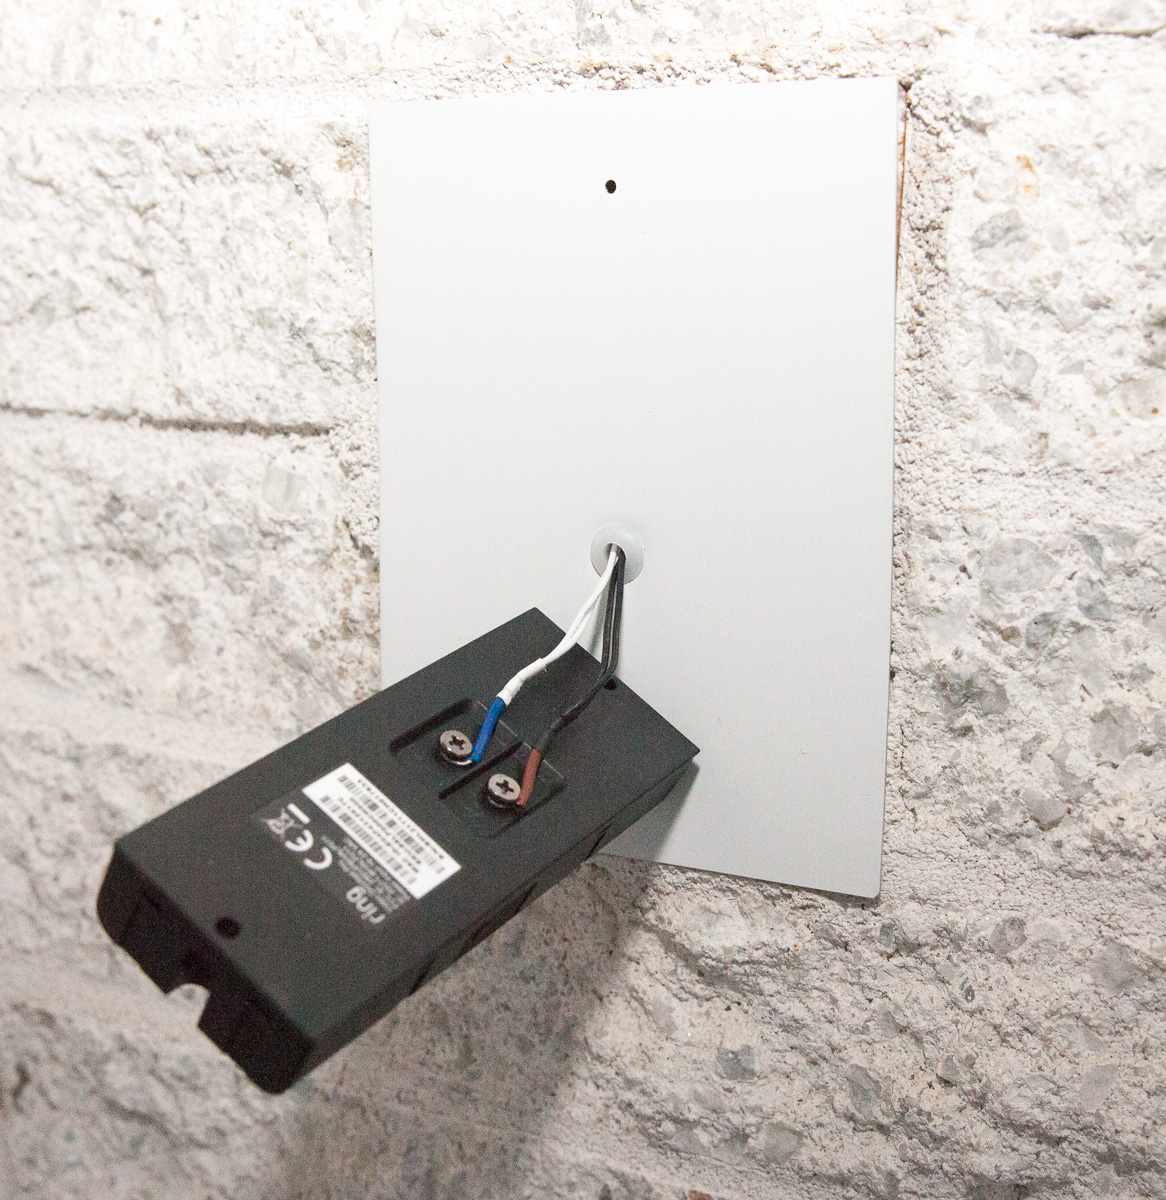 Ring Doorbell Wiring Diagram Off Grid Cabin Glen 39s Home Automation Installing The Pro Video